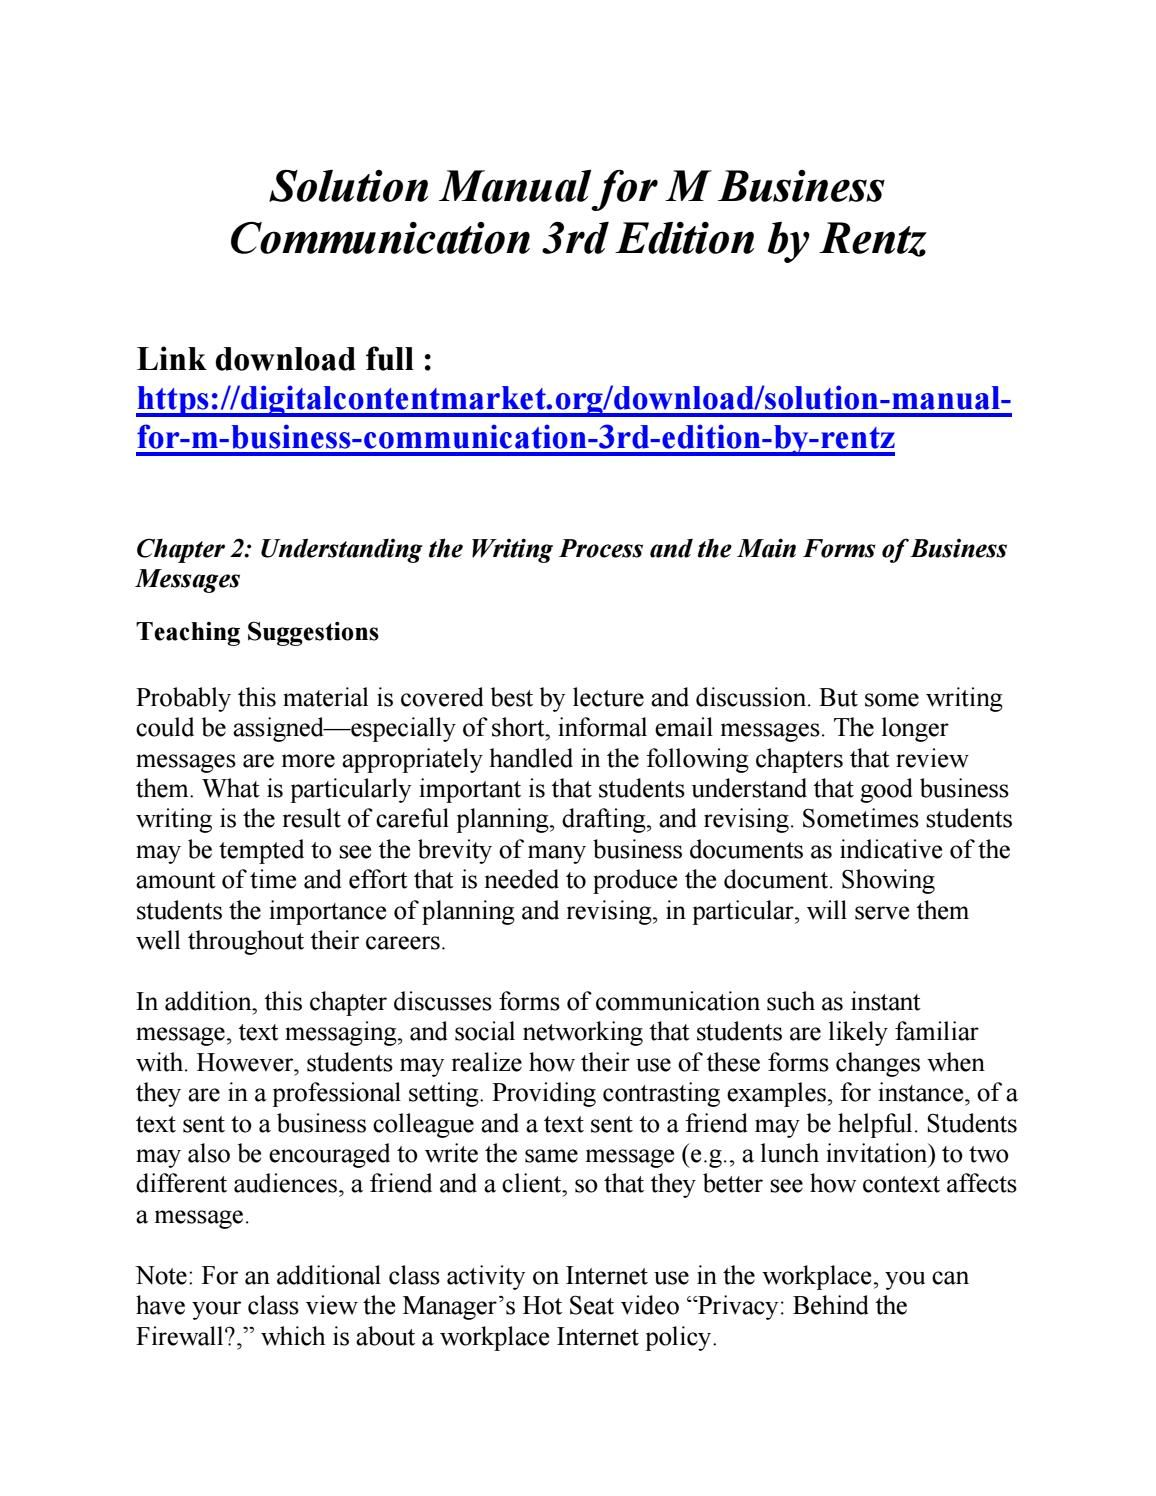 Download solution manual for m business communication 3rd edition by rentz